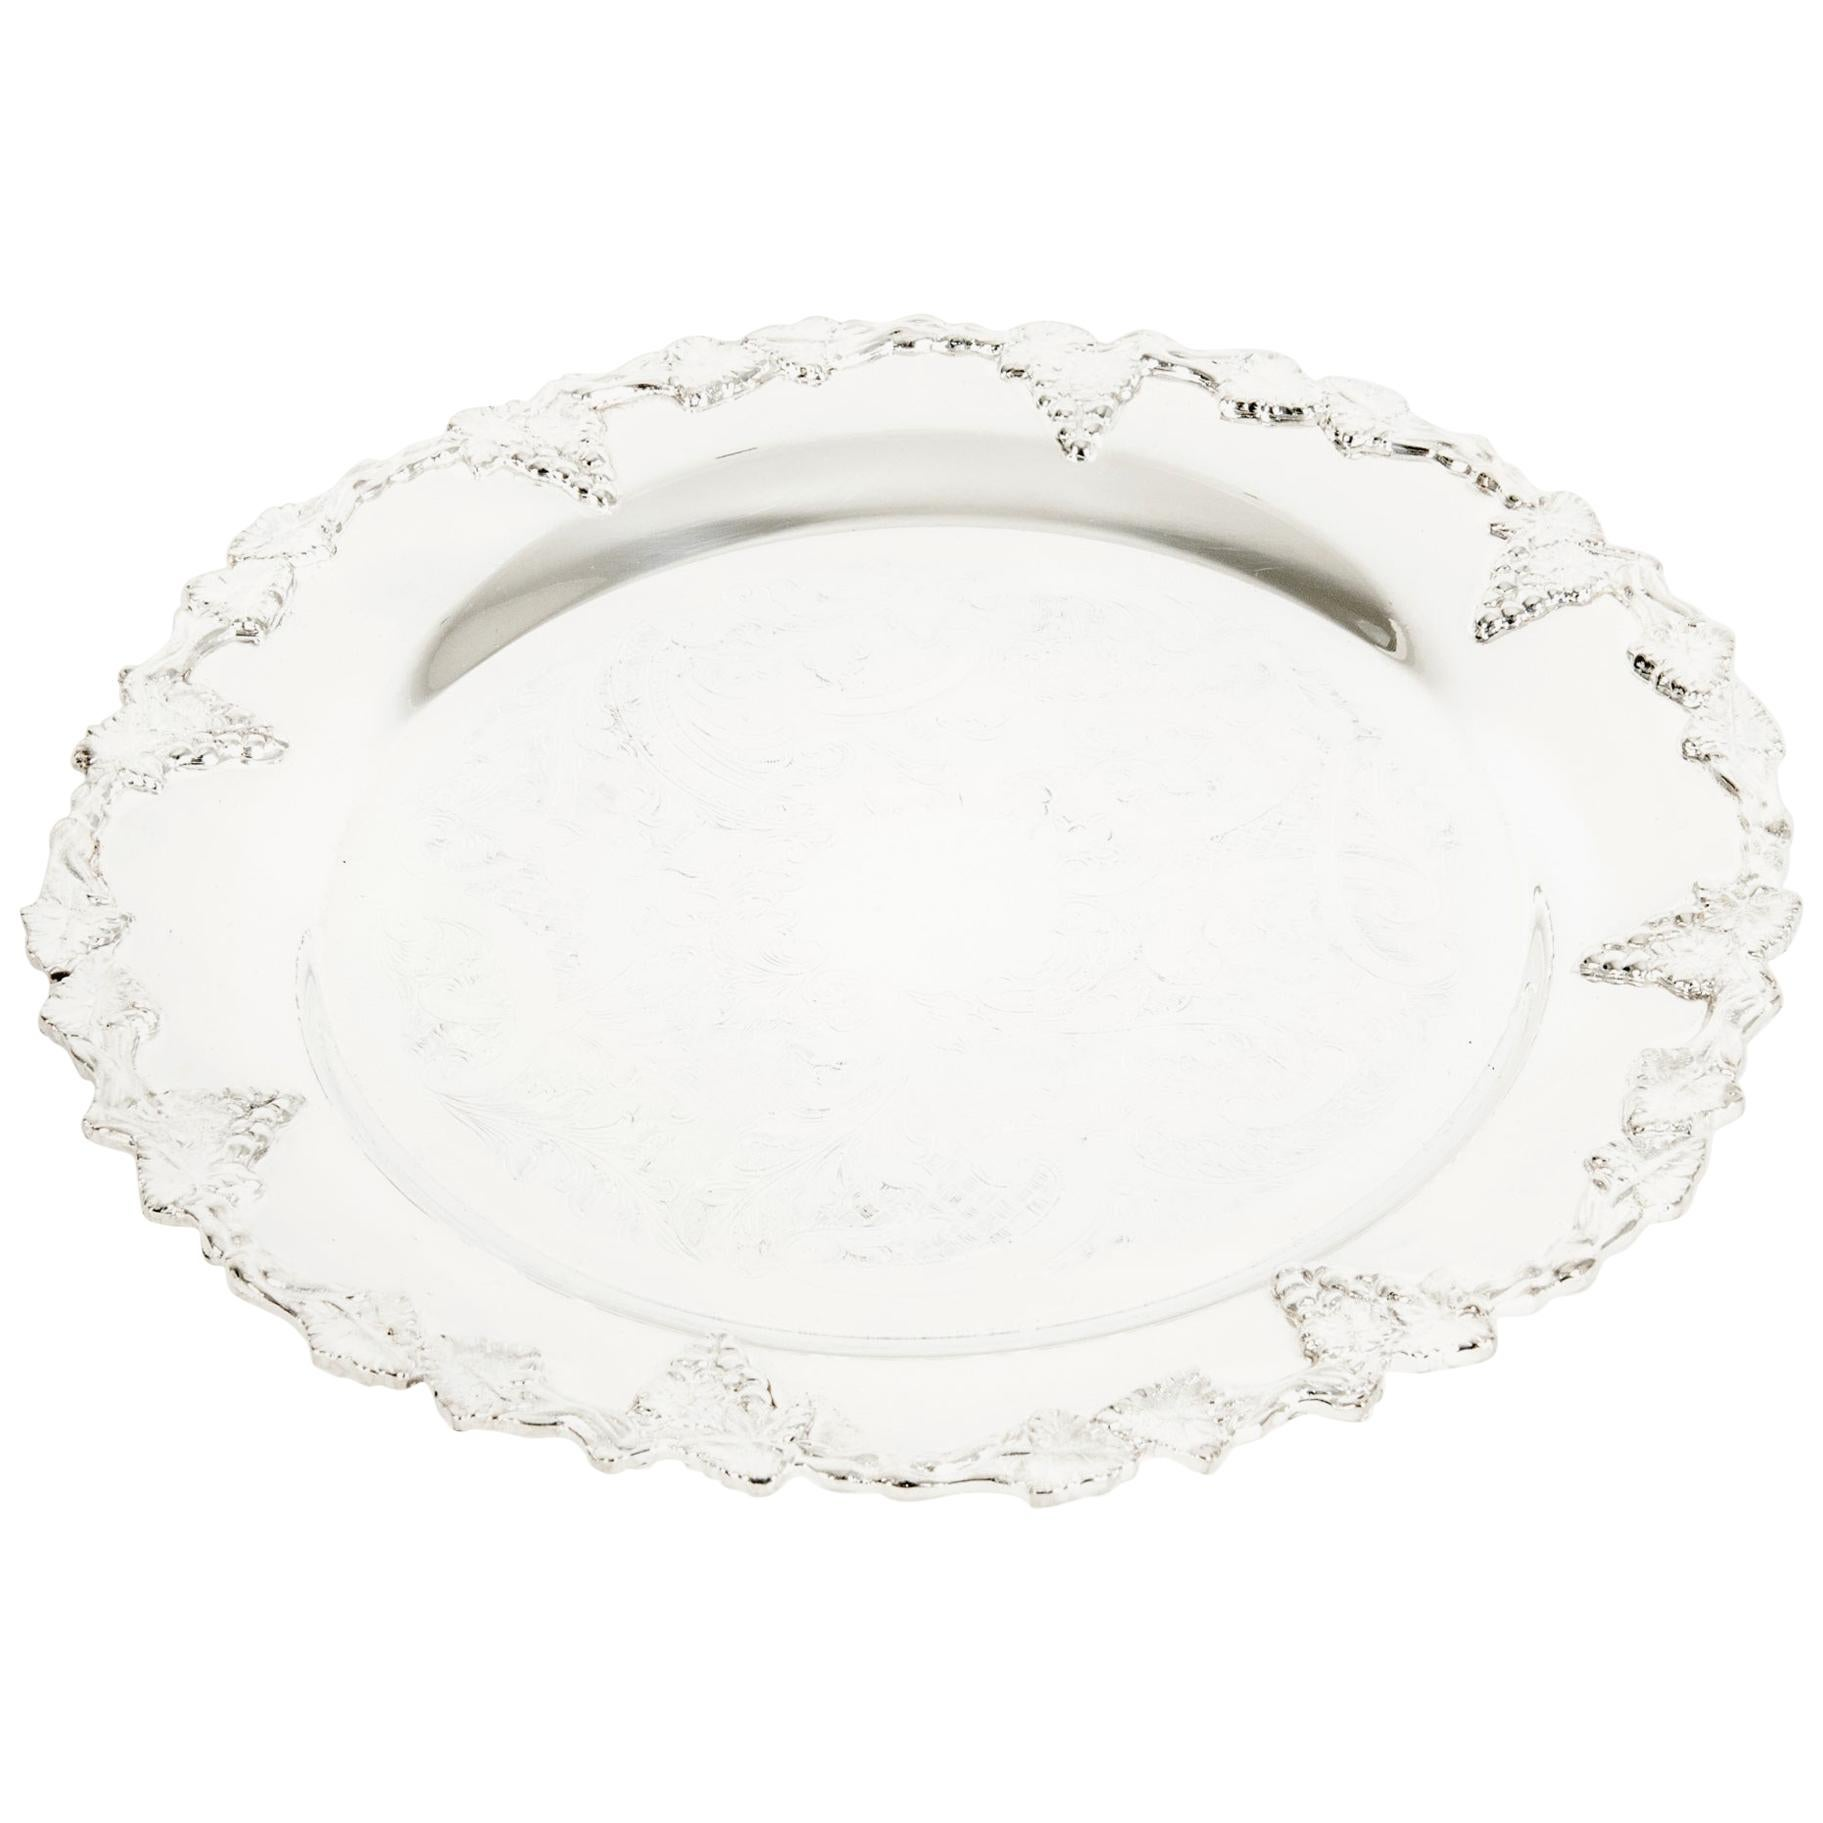 English Silver Plated Round Barware / Tableware Tray